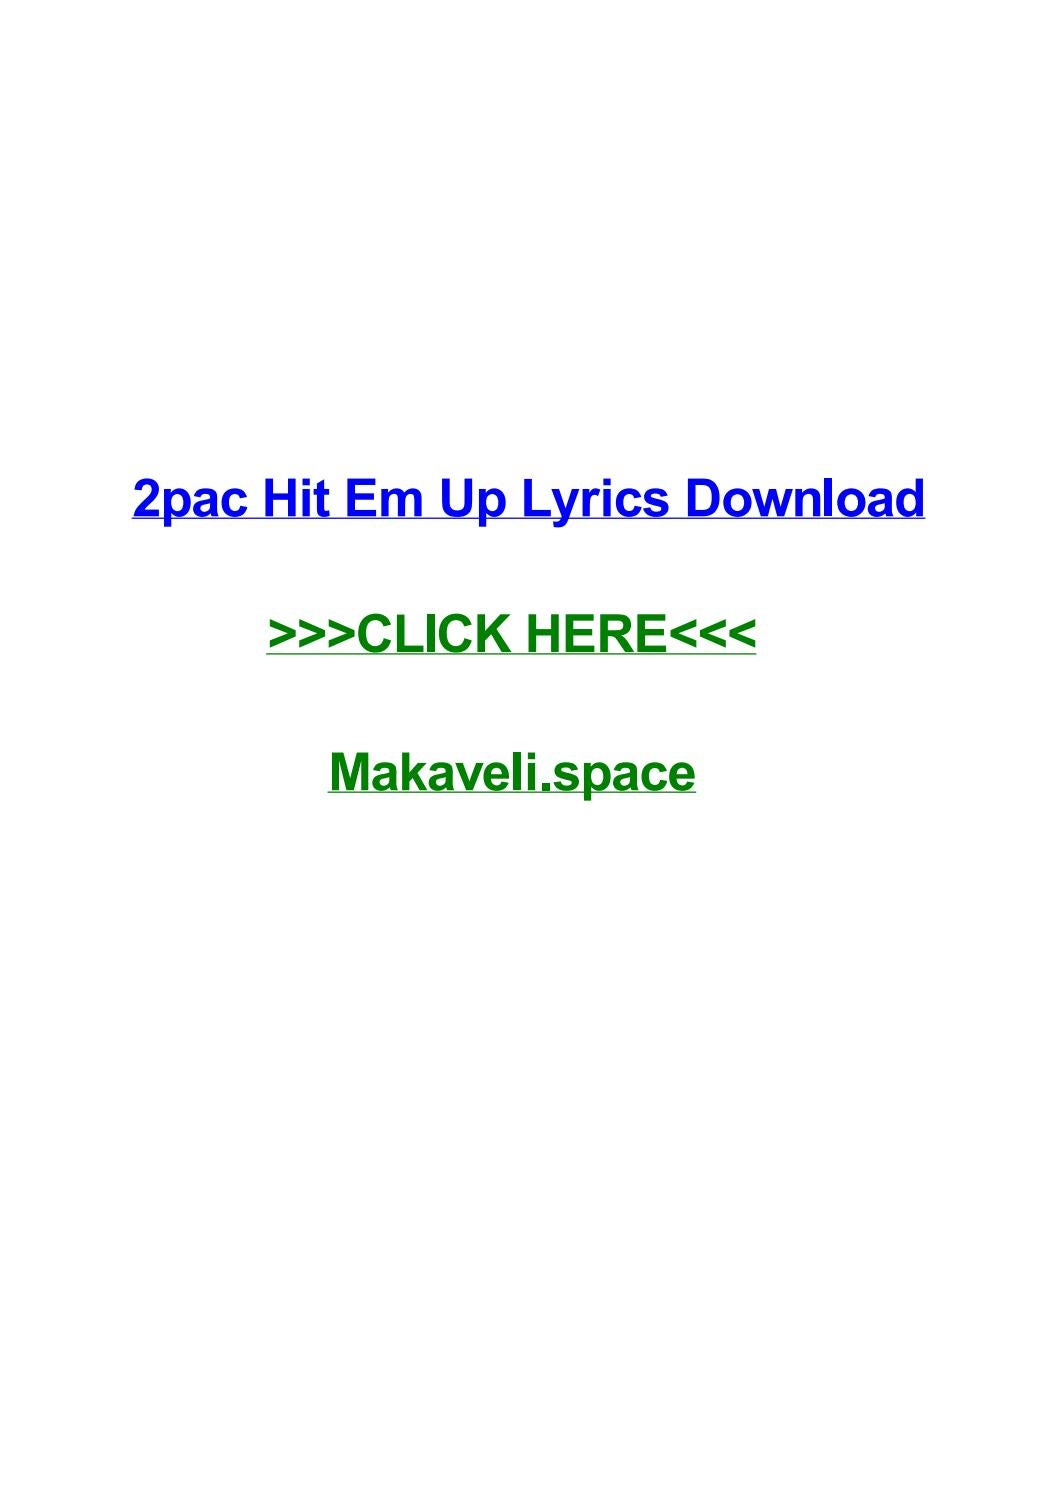 2pac hit em up lyrics download by jennyhpsx - issuu